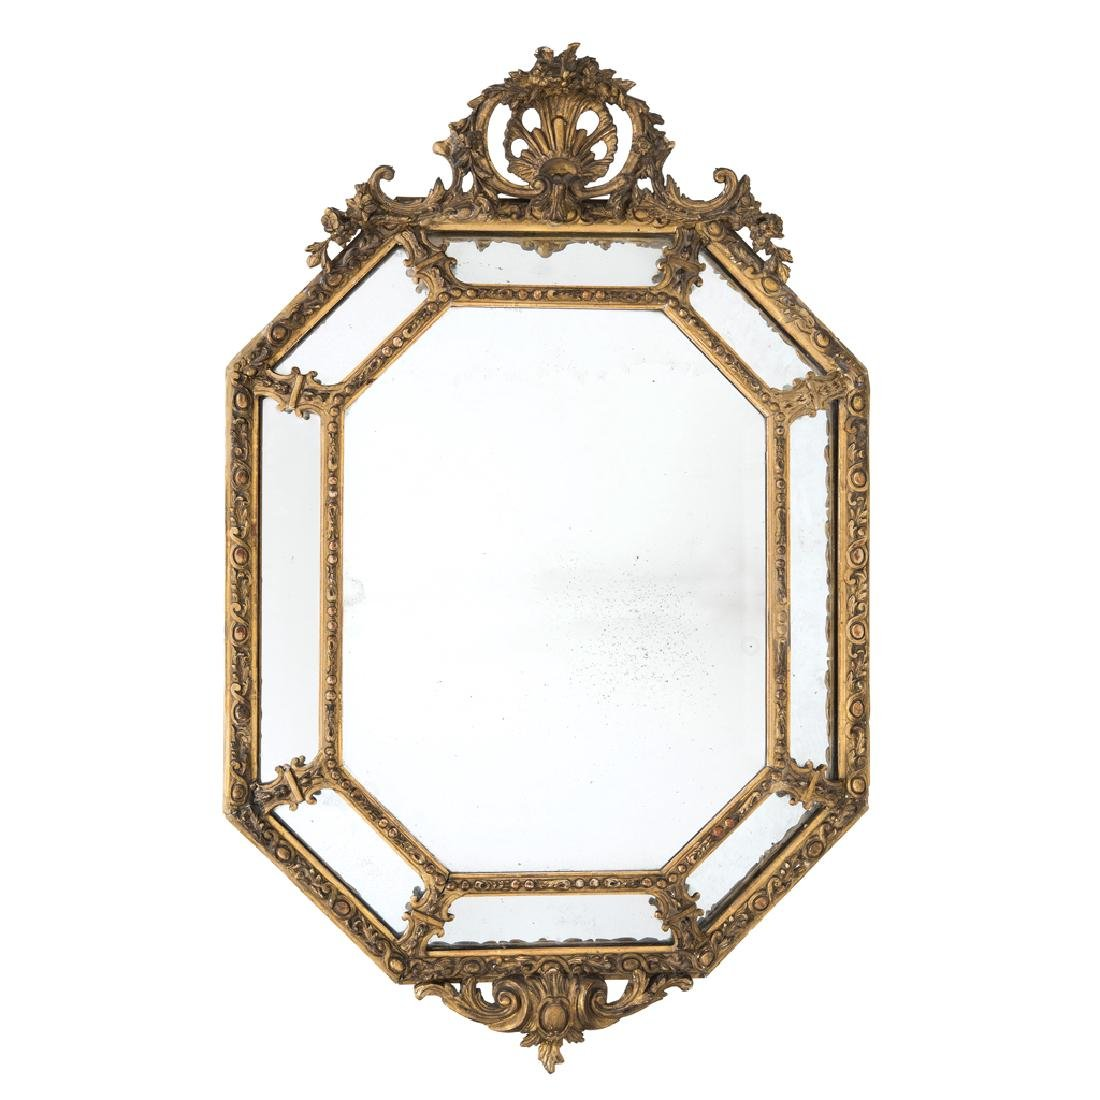 AN EIGHT-SIDED MIRROR. FRANCE, 19th CENTURY. Made in